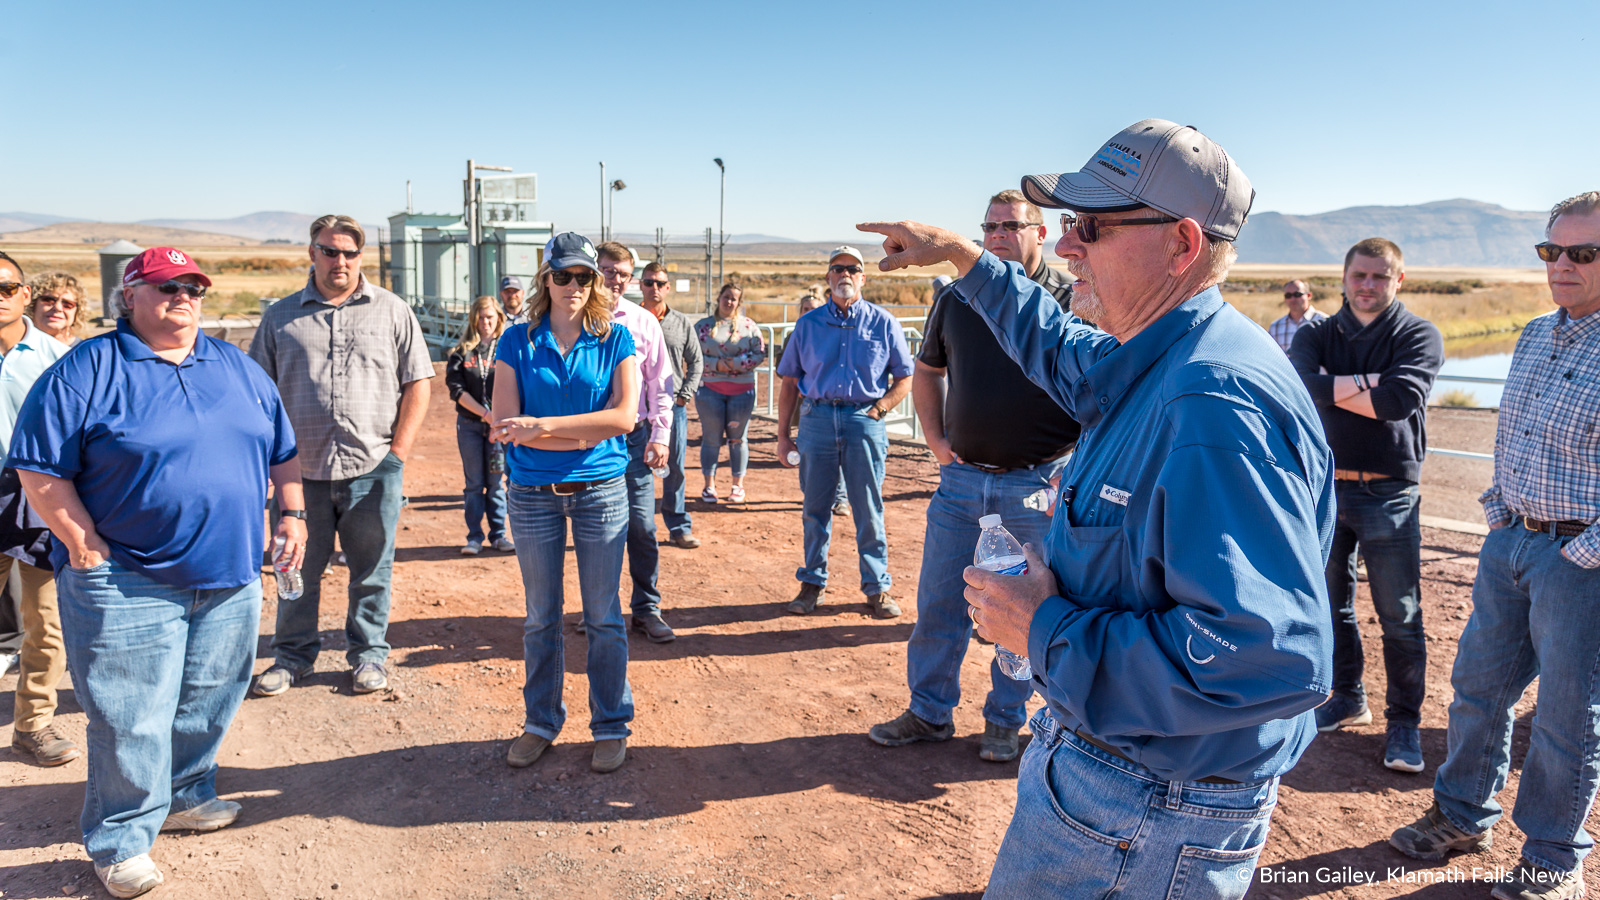 Steve Kandra speaks about the FF Pumping Station - Straights Drain, the final stop of the Klamath Project during the 2018 KWUA Fall Harvest Tour. September 27, 2018 (Brian Gailey)